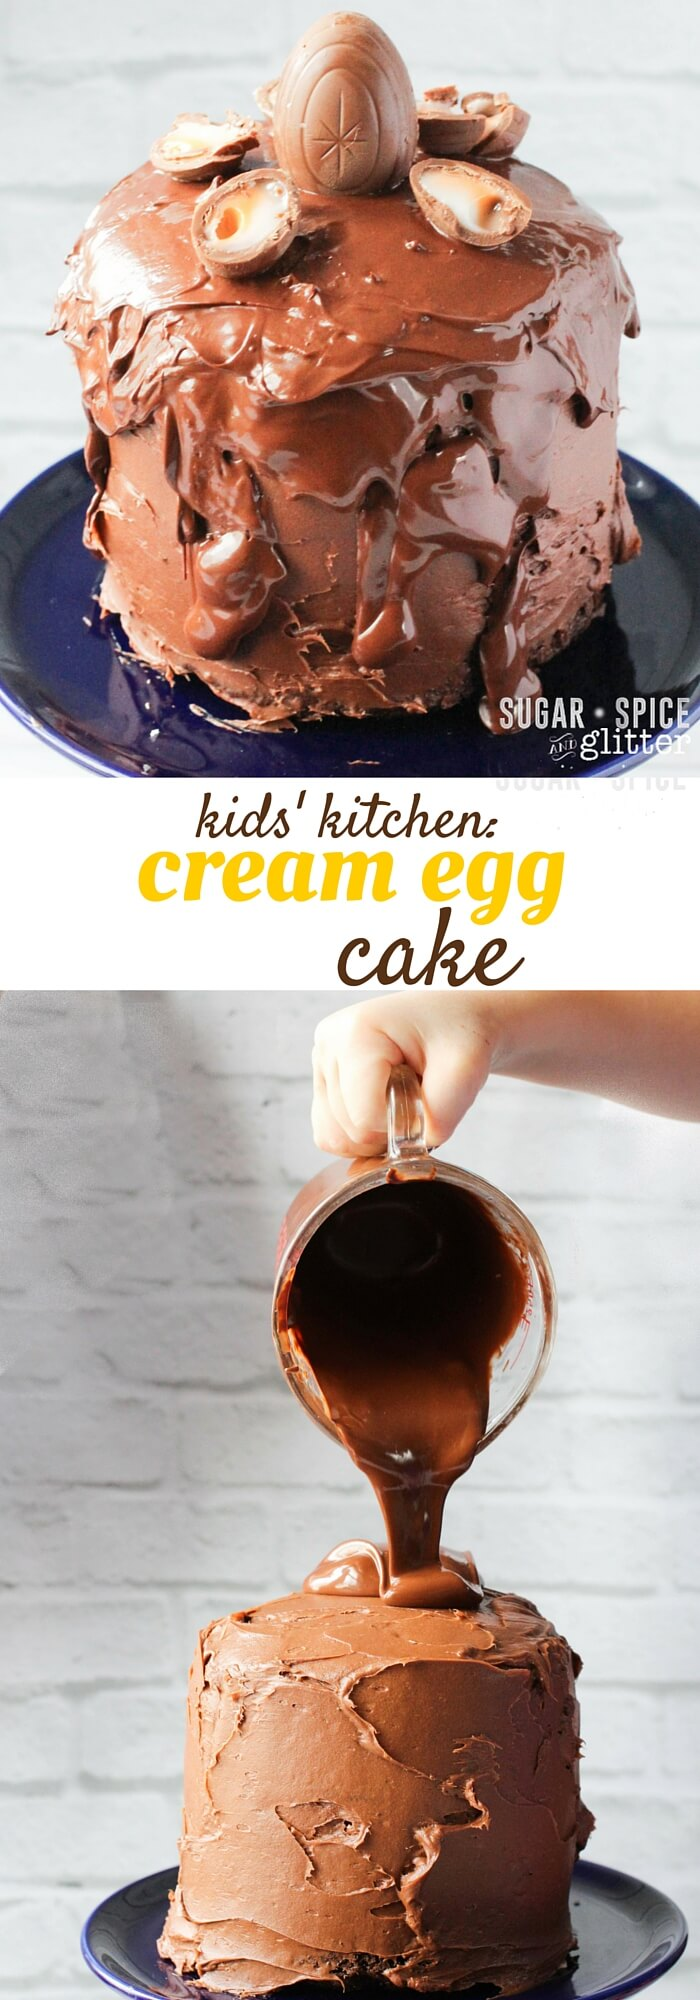 Can you believe that this gorgeous, decadent Cream Egg Easter Cake was made by a 4 year old? Super easy, anyone can make it - this is a kids' kitchen recipe your kids will be so proud of making (and if kids can make it, any adult can, too!) Quadruple chocolate decadence